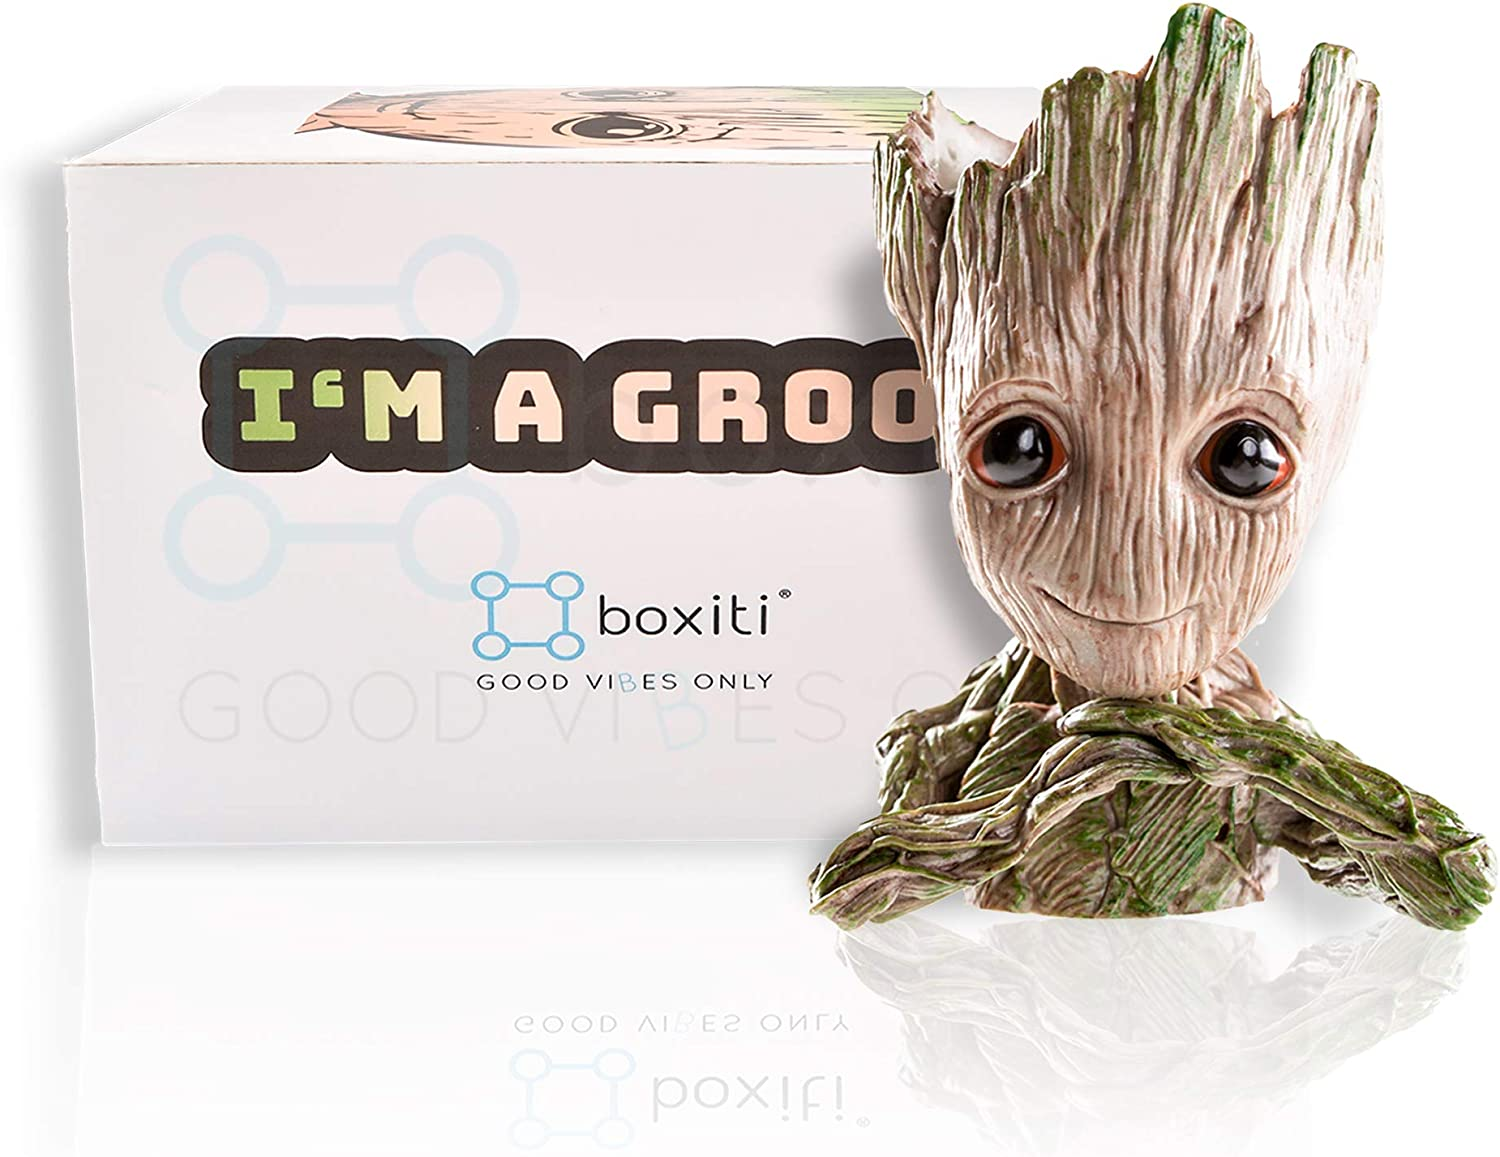 Boxiti Baby Groot Guardians of Galaxy Action Figure Flowerpot & Pens Holder for Home, Office Planter pots Creative Decoration with Gift Groot Key Ring Model 2